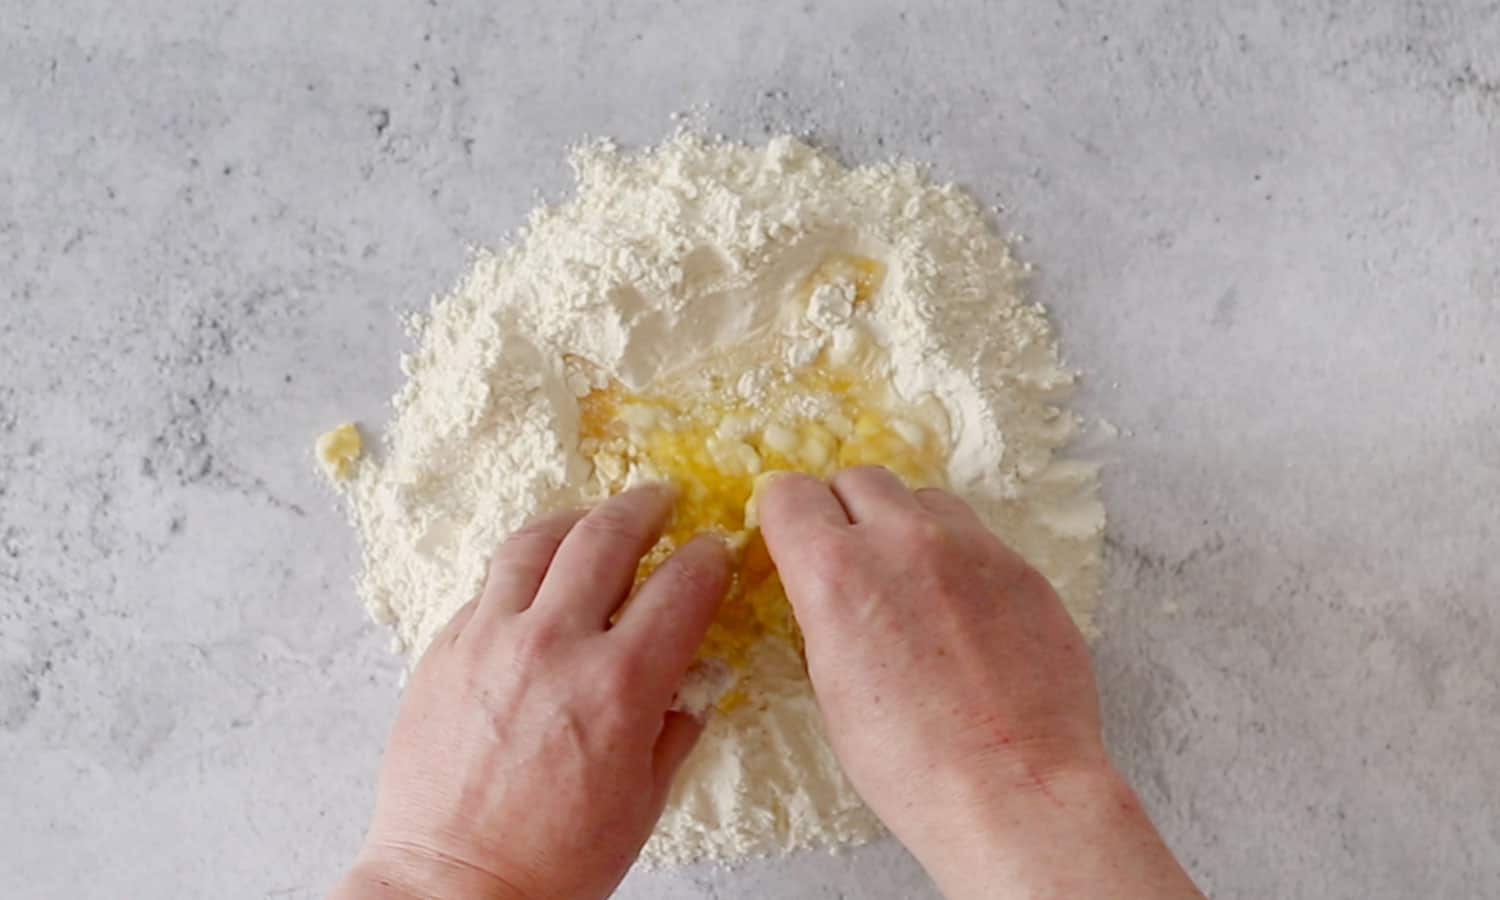 Mixing the flour with eggs.